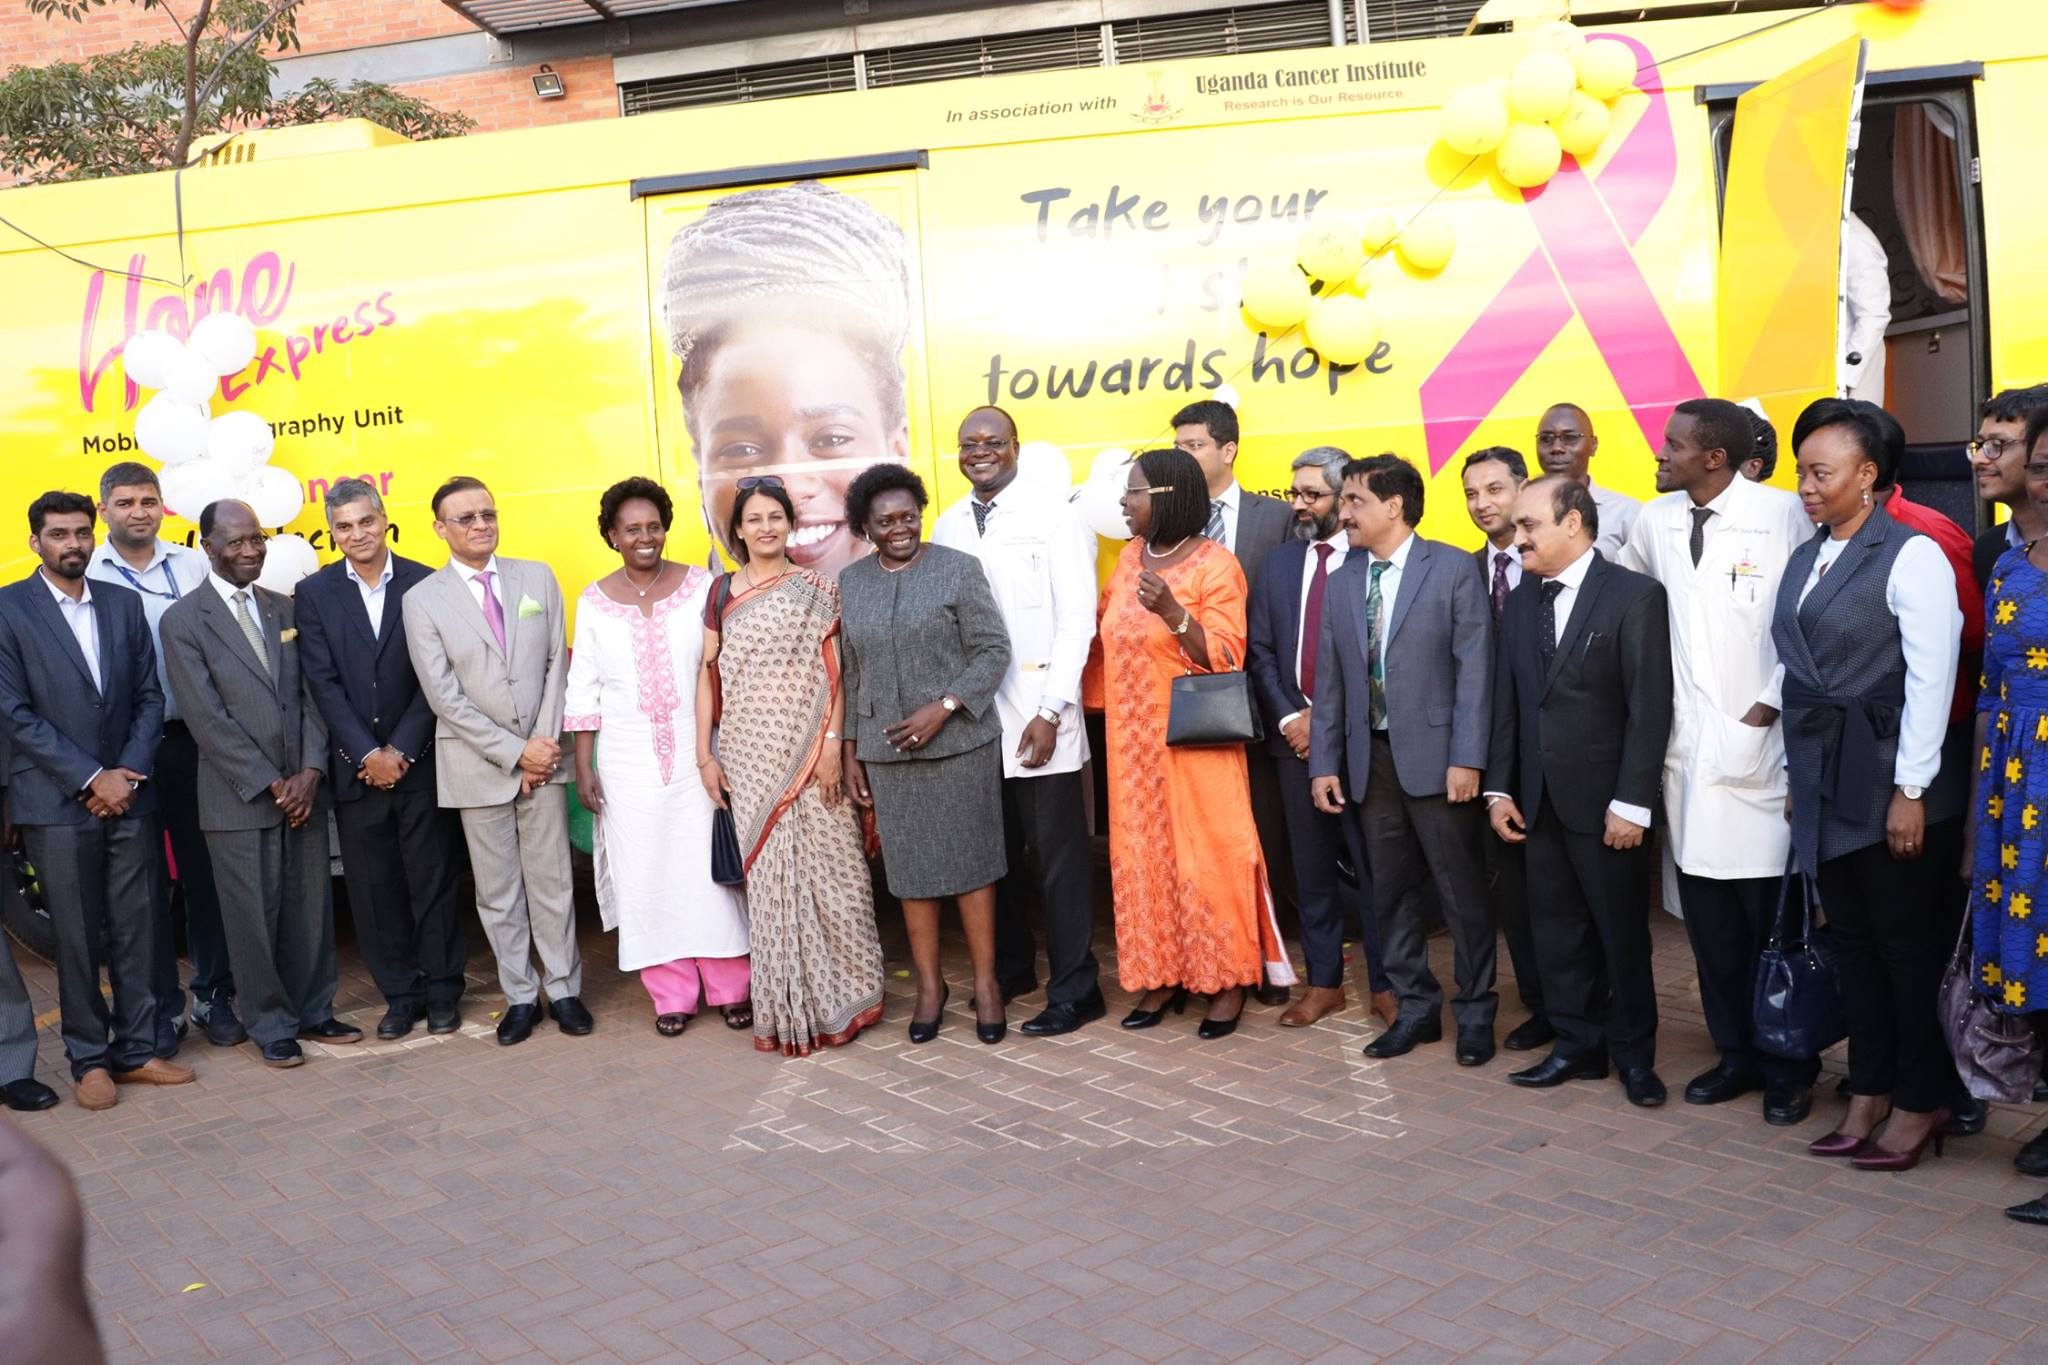 HANDOVER OF THE MOBILE MAMMOGRAPHY VAN AT UGANDA CANCER INSTITUTE